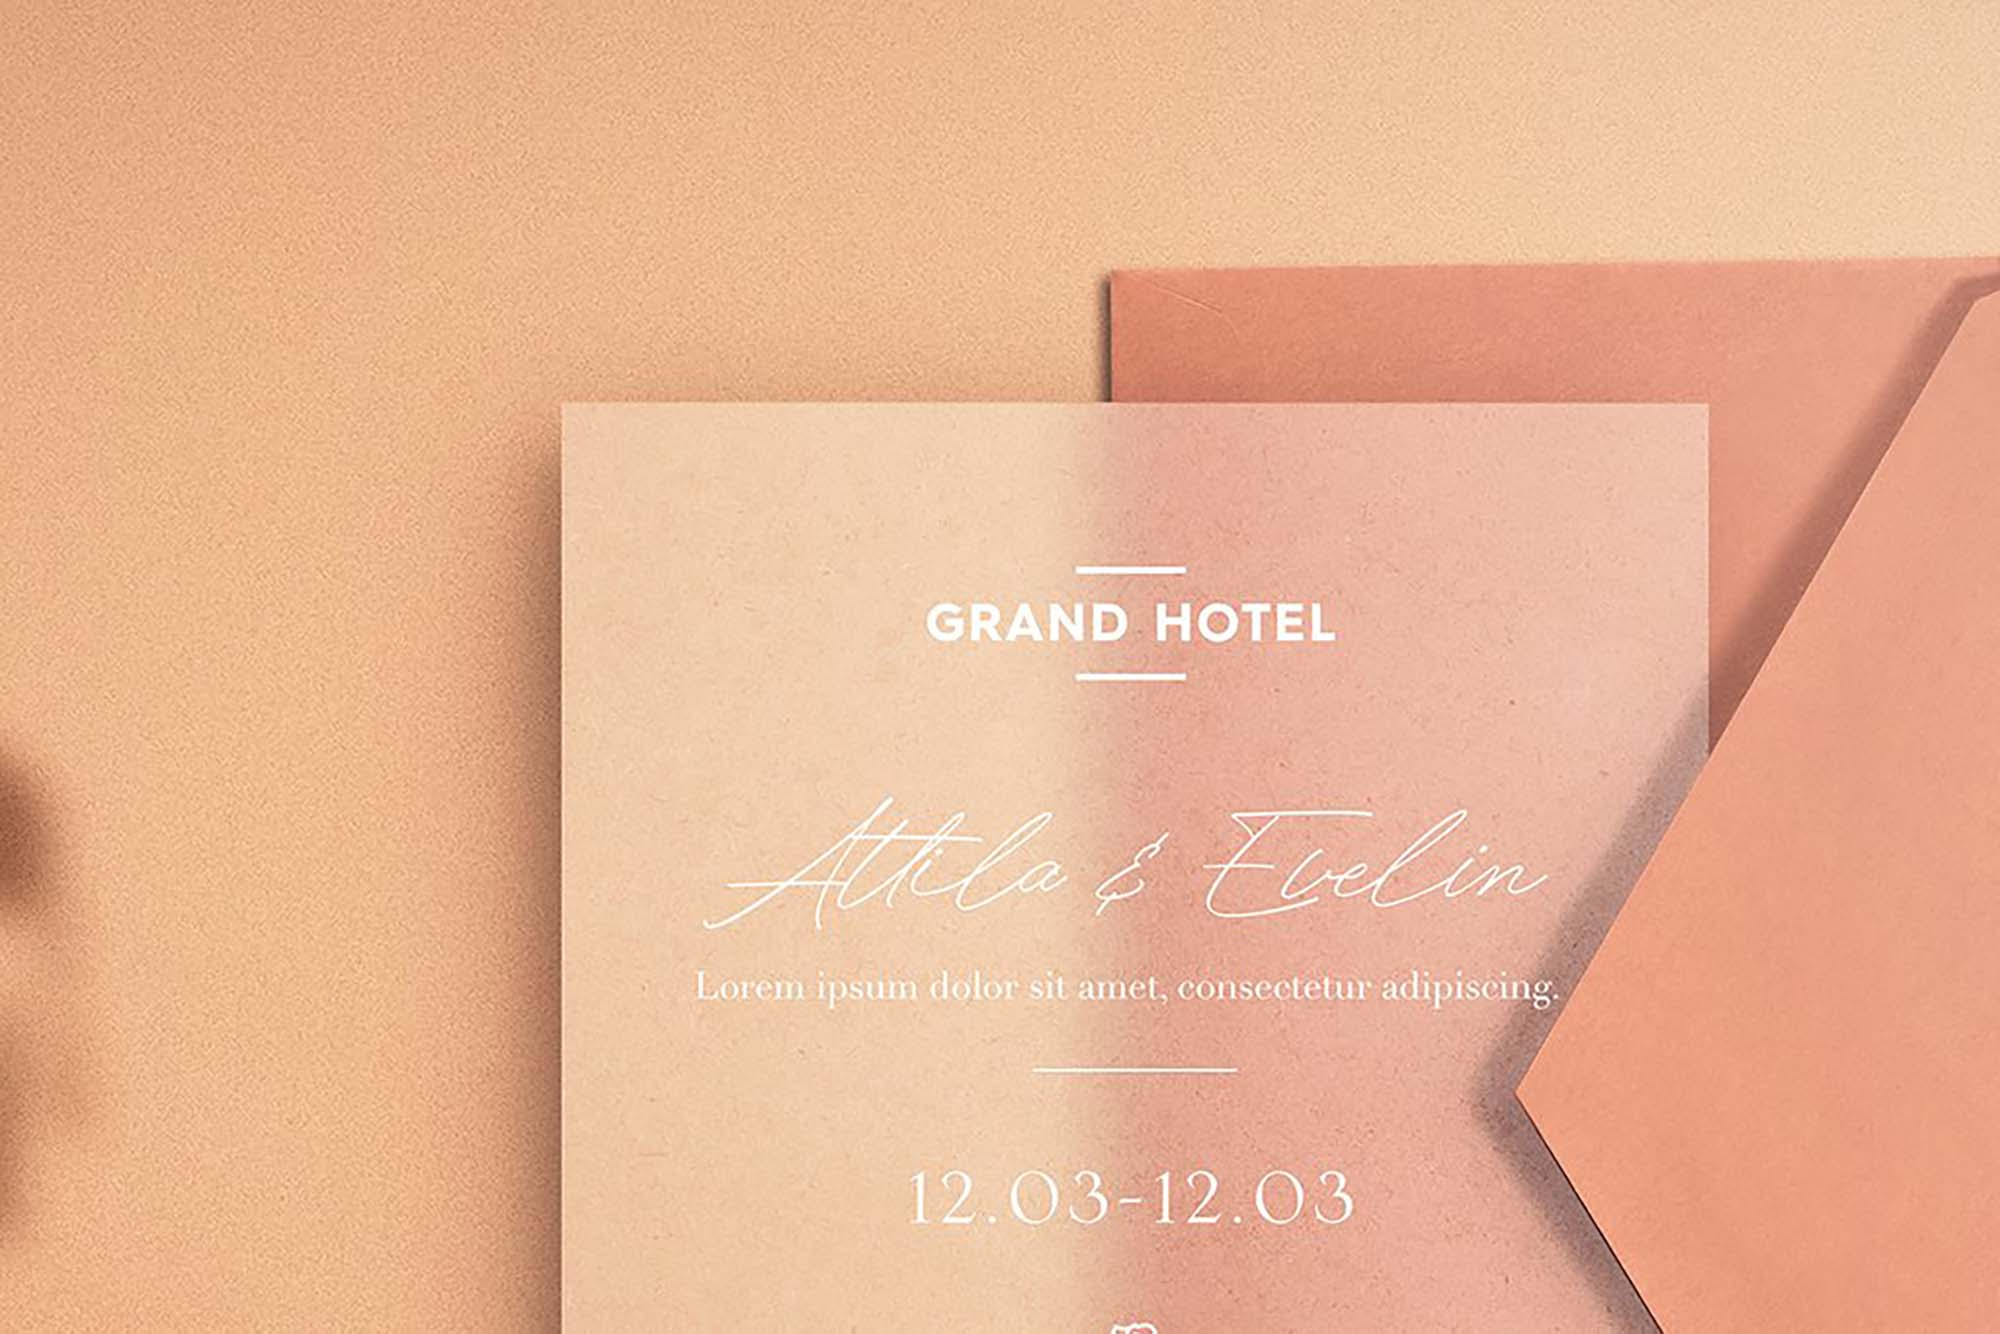 Leaflet Invitation Mockup 2